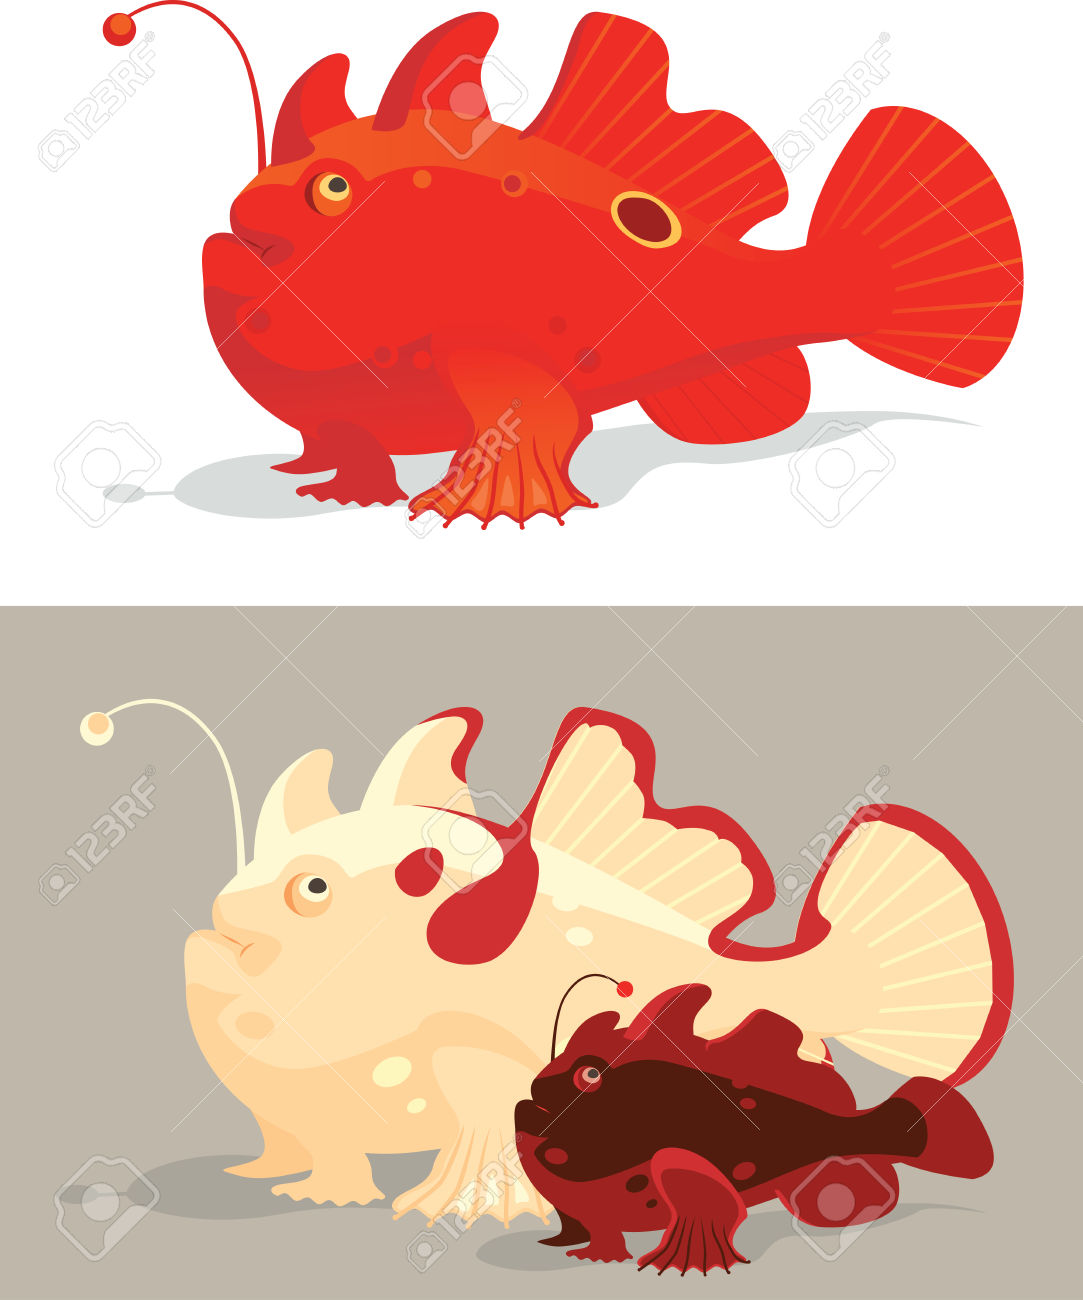 frogfish pictures.